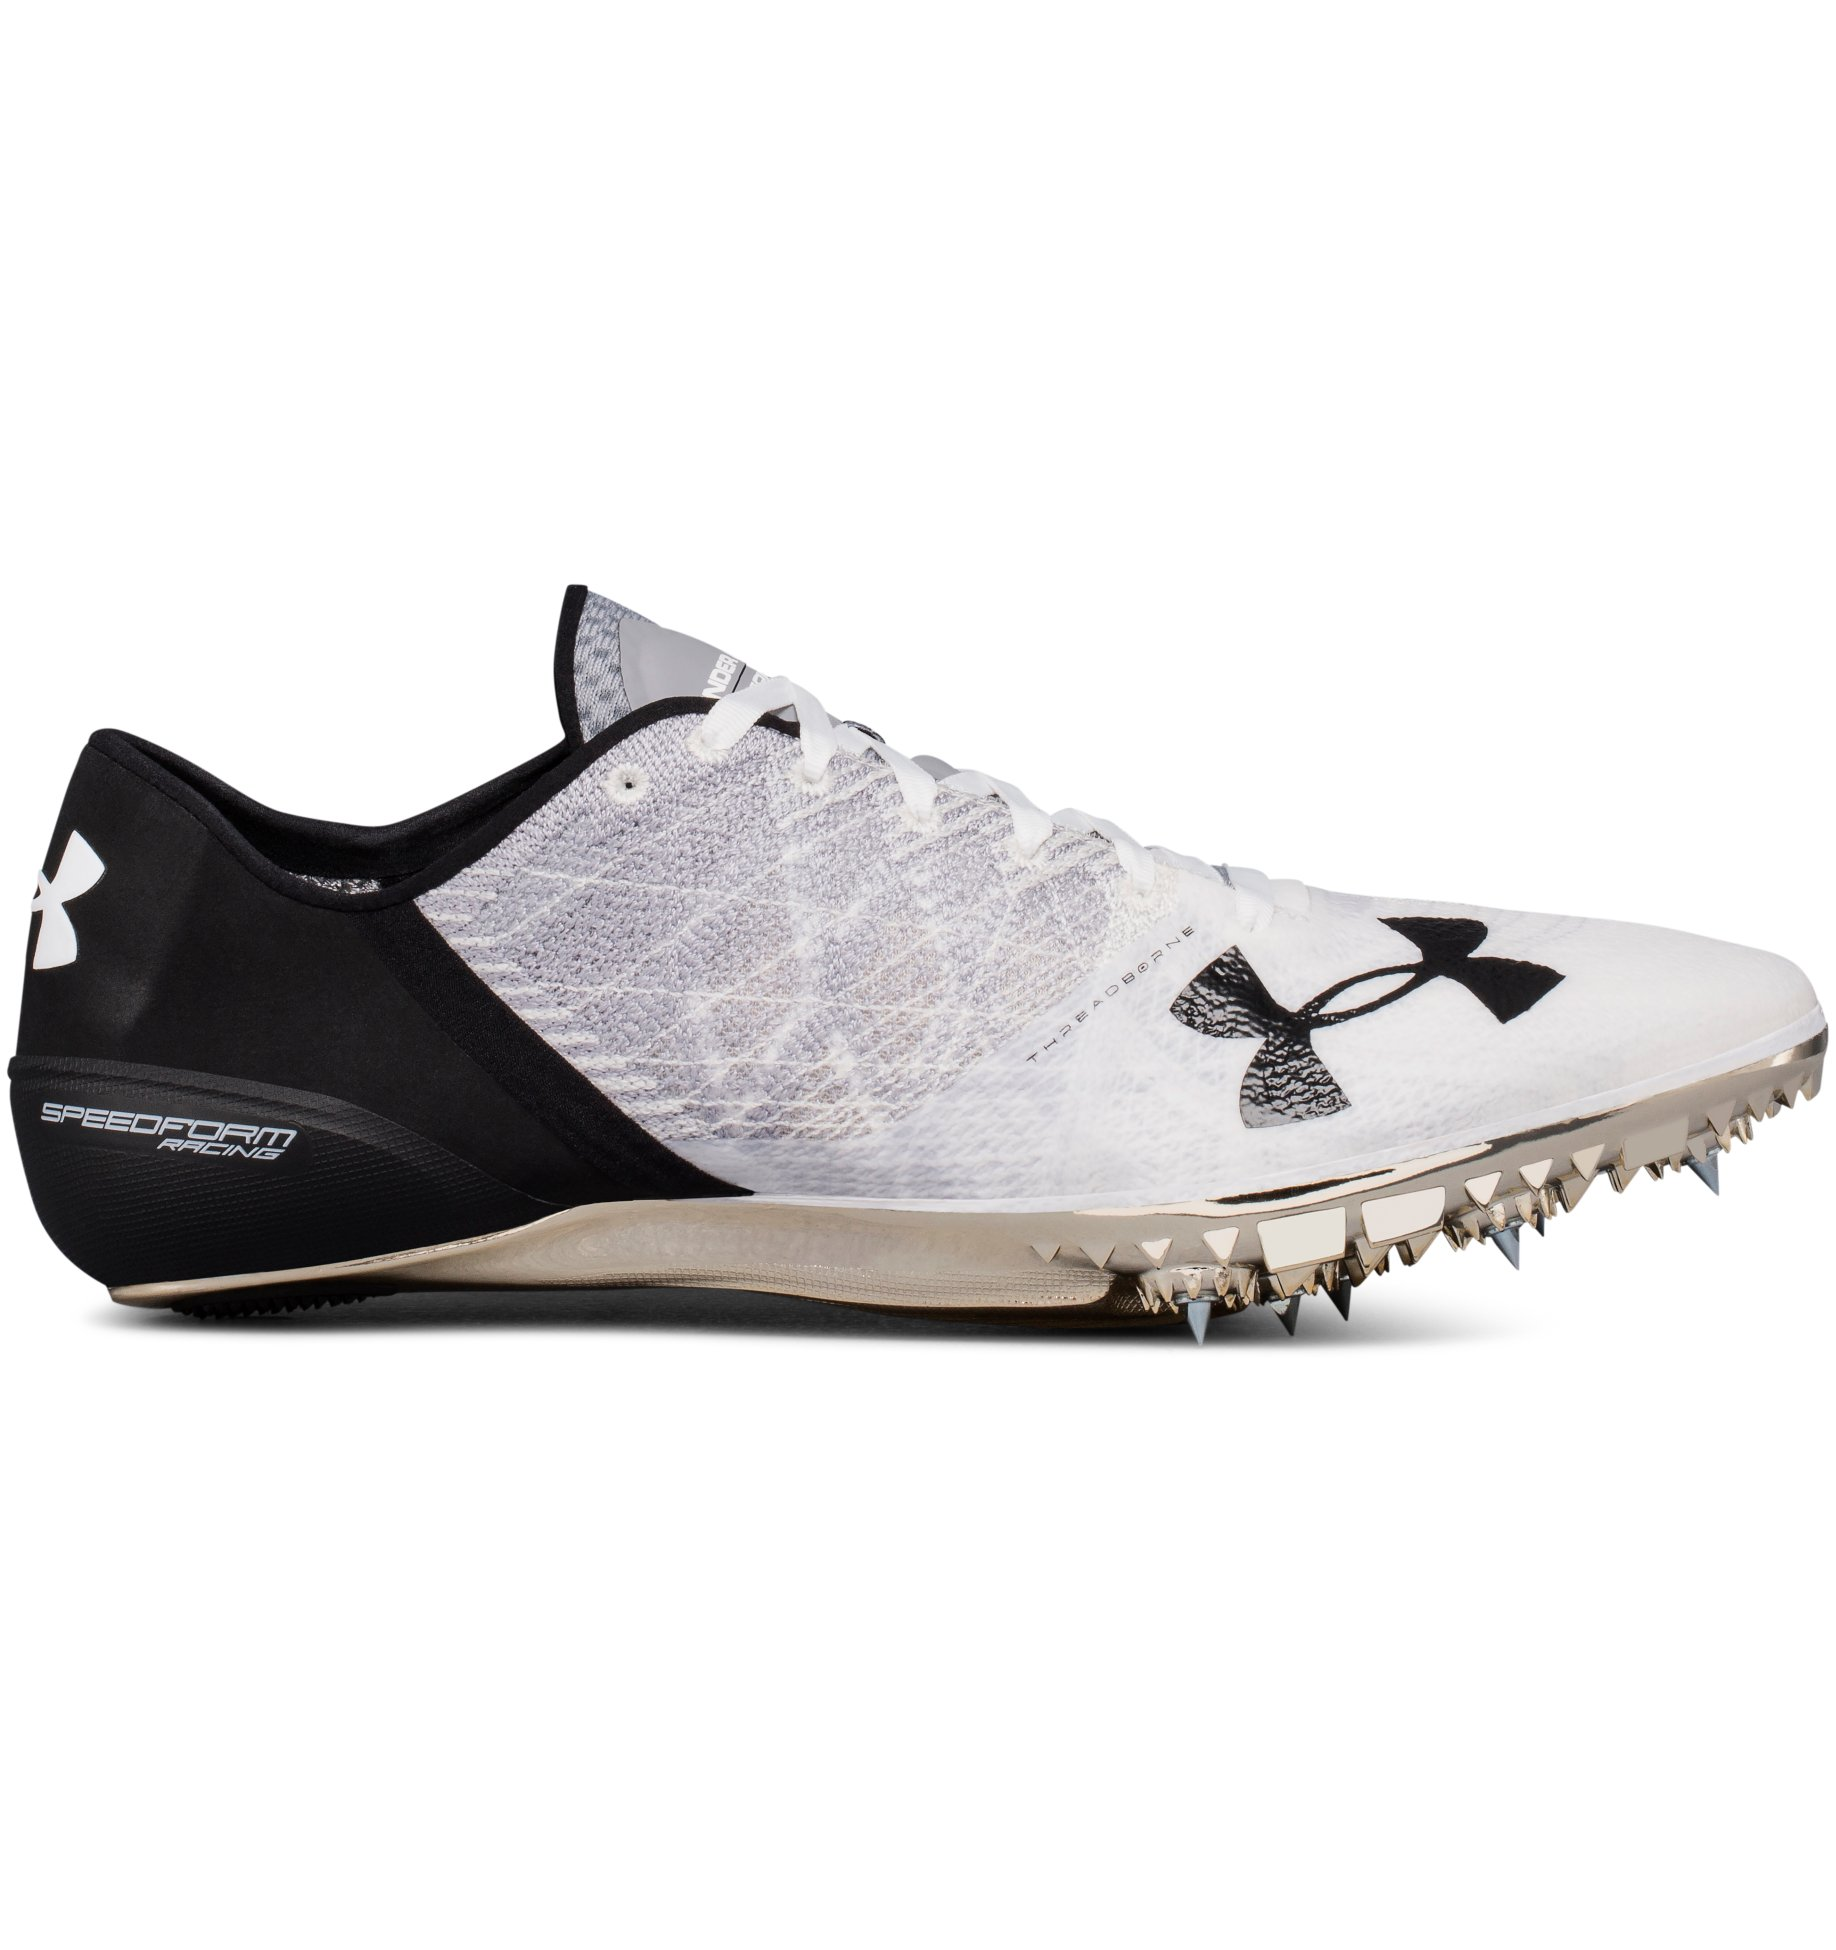 Under Armour Running Shoes - 9 Best Shoes from Under Armour 85e8be456